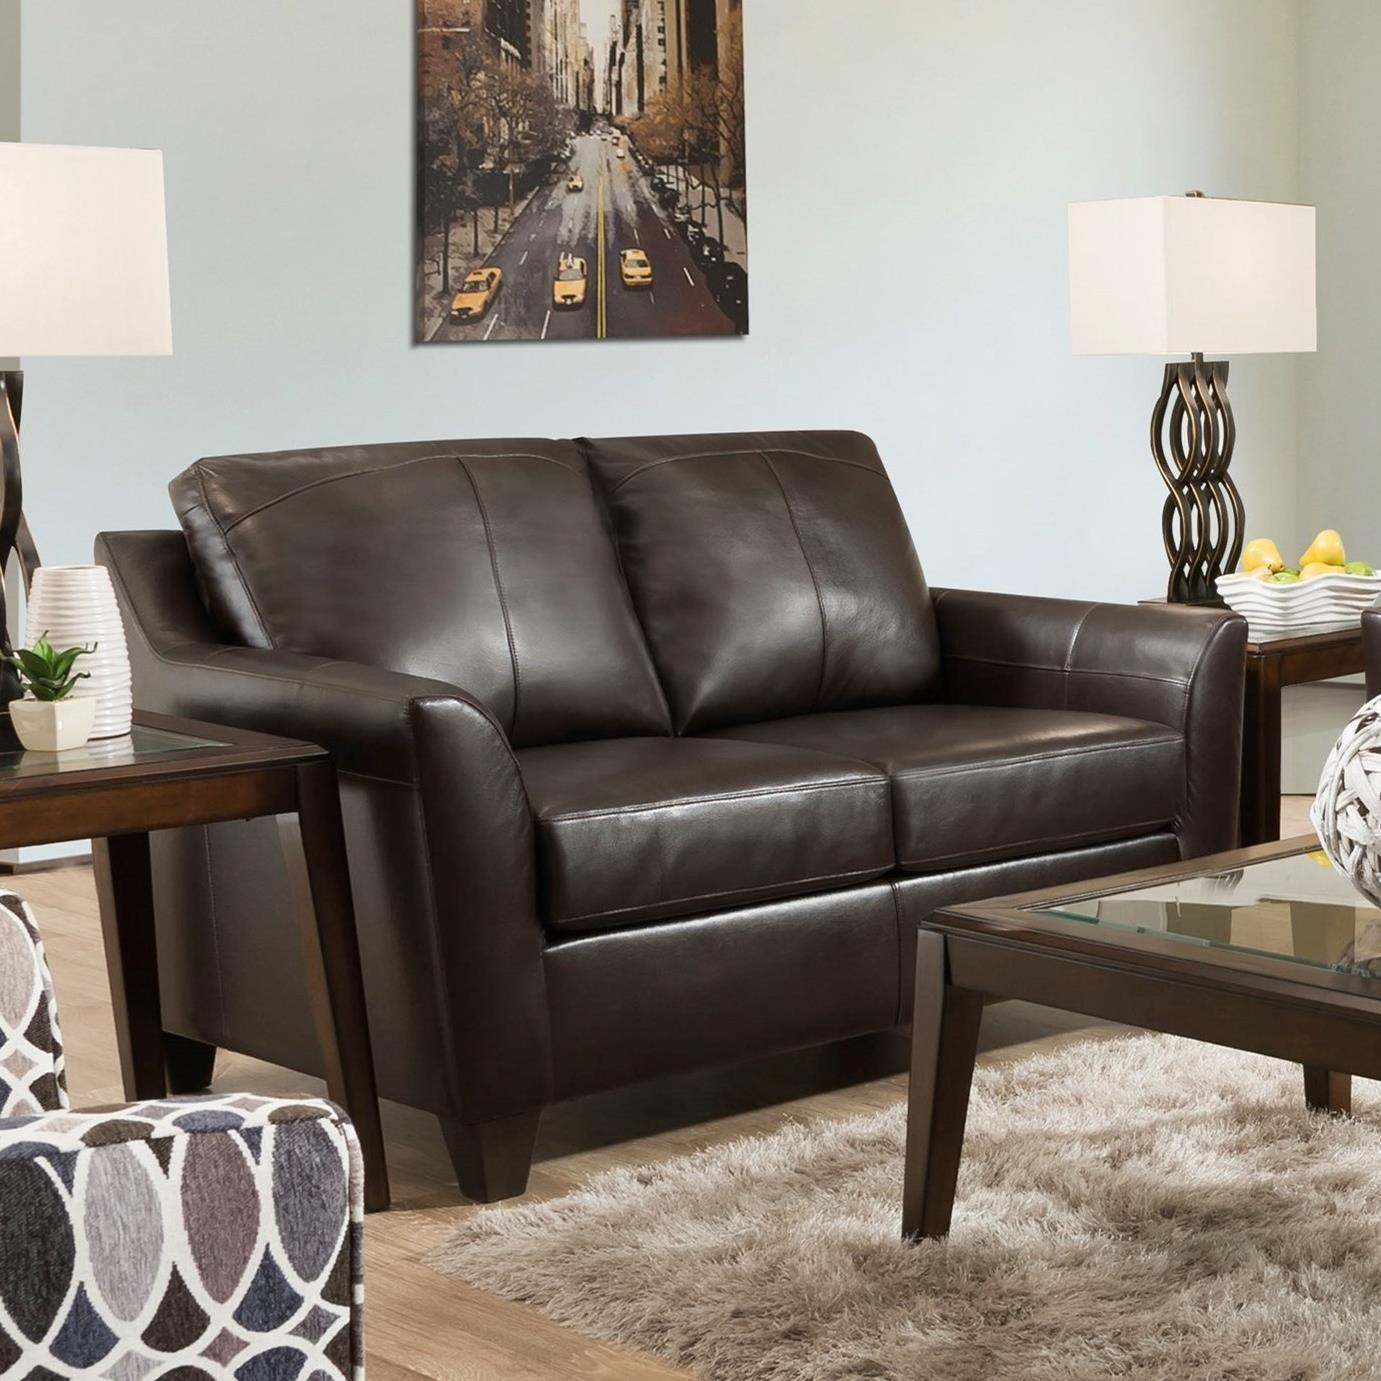 2029 Loveseat by Lane at Esprit Decor Home Furnishings